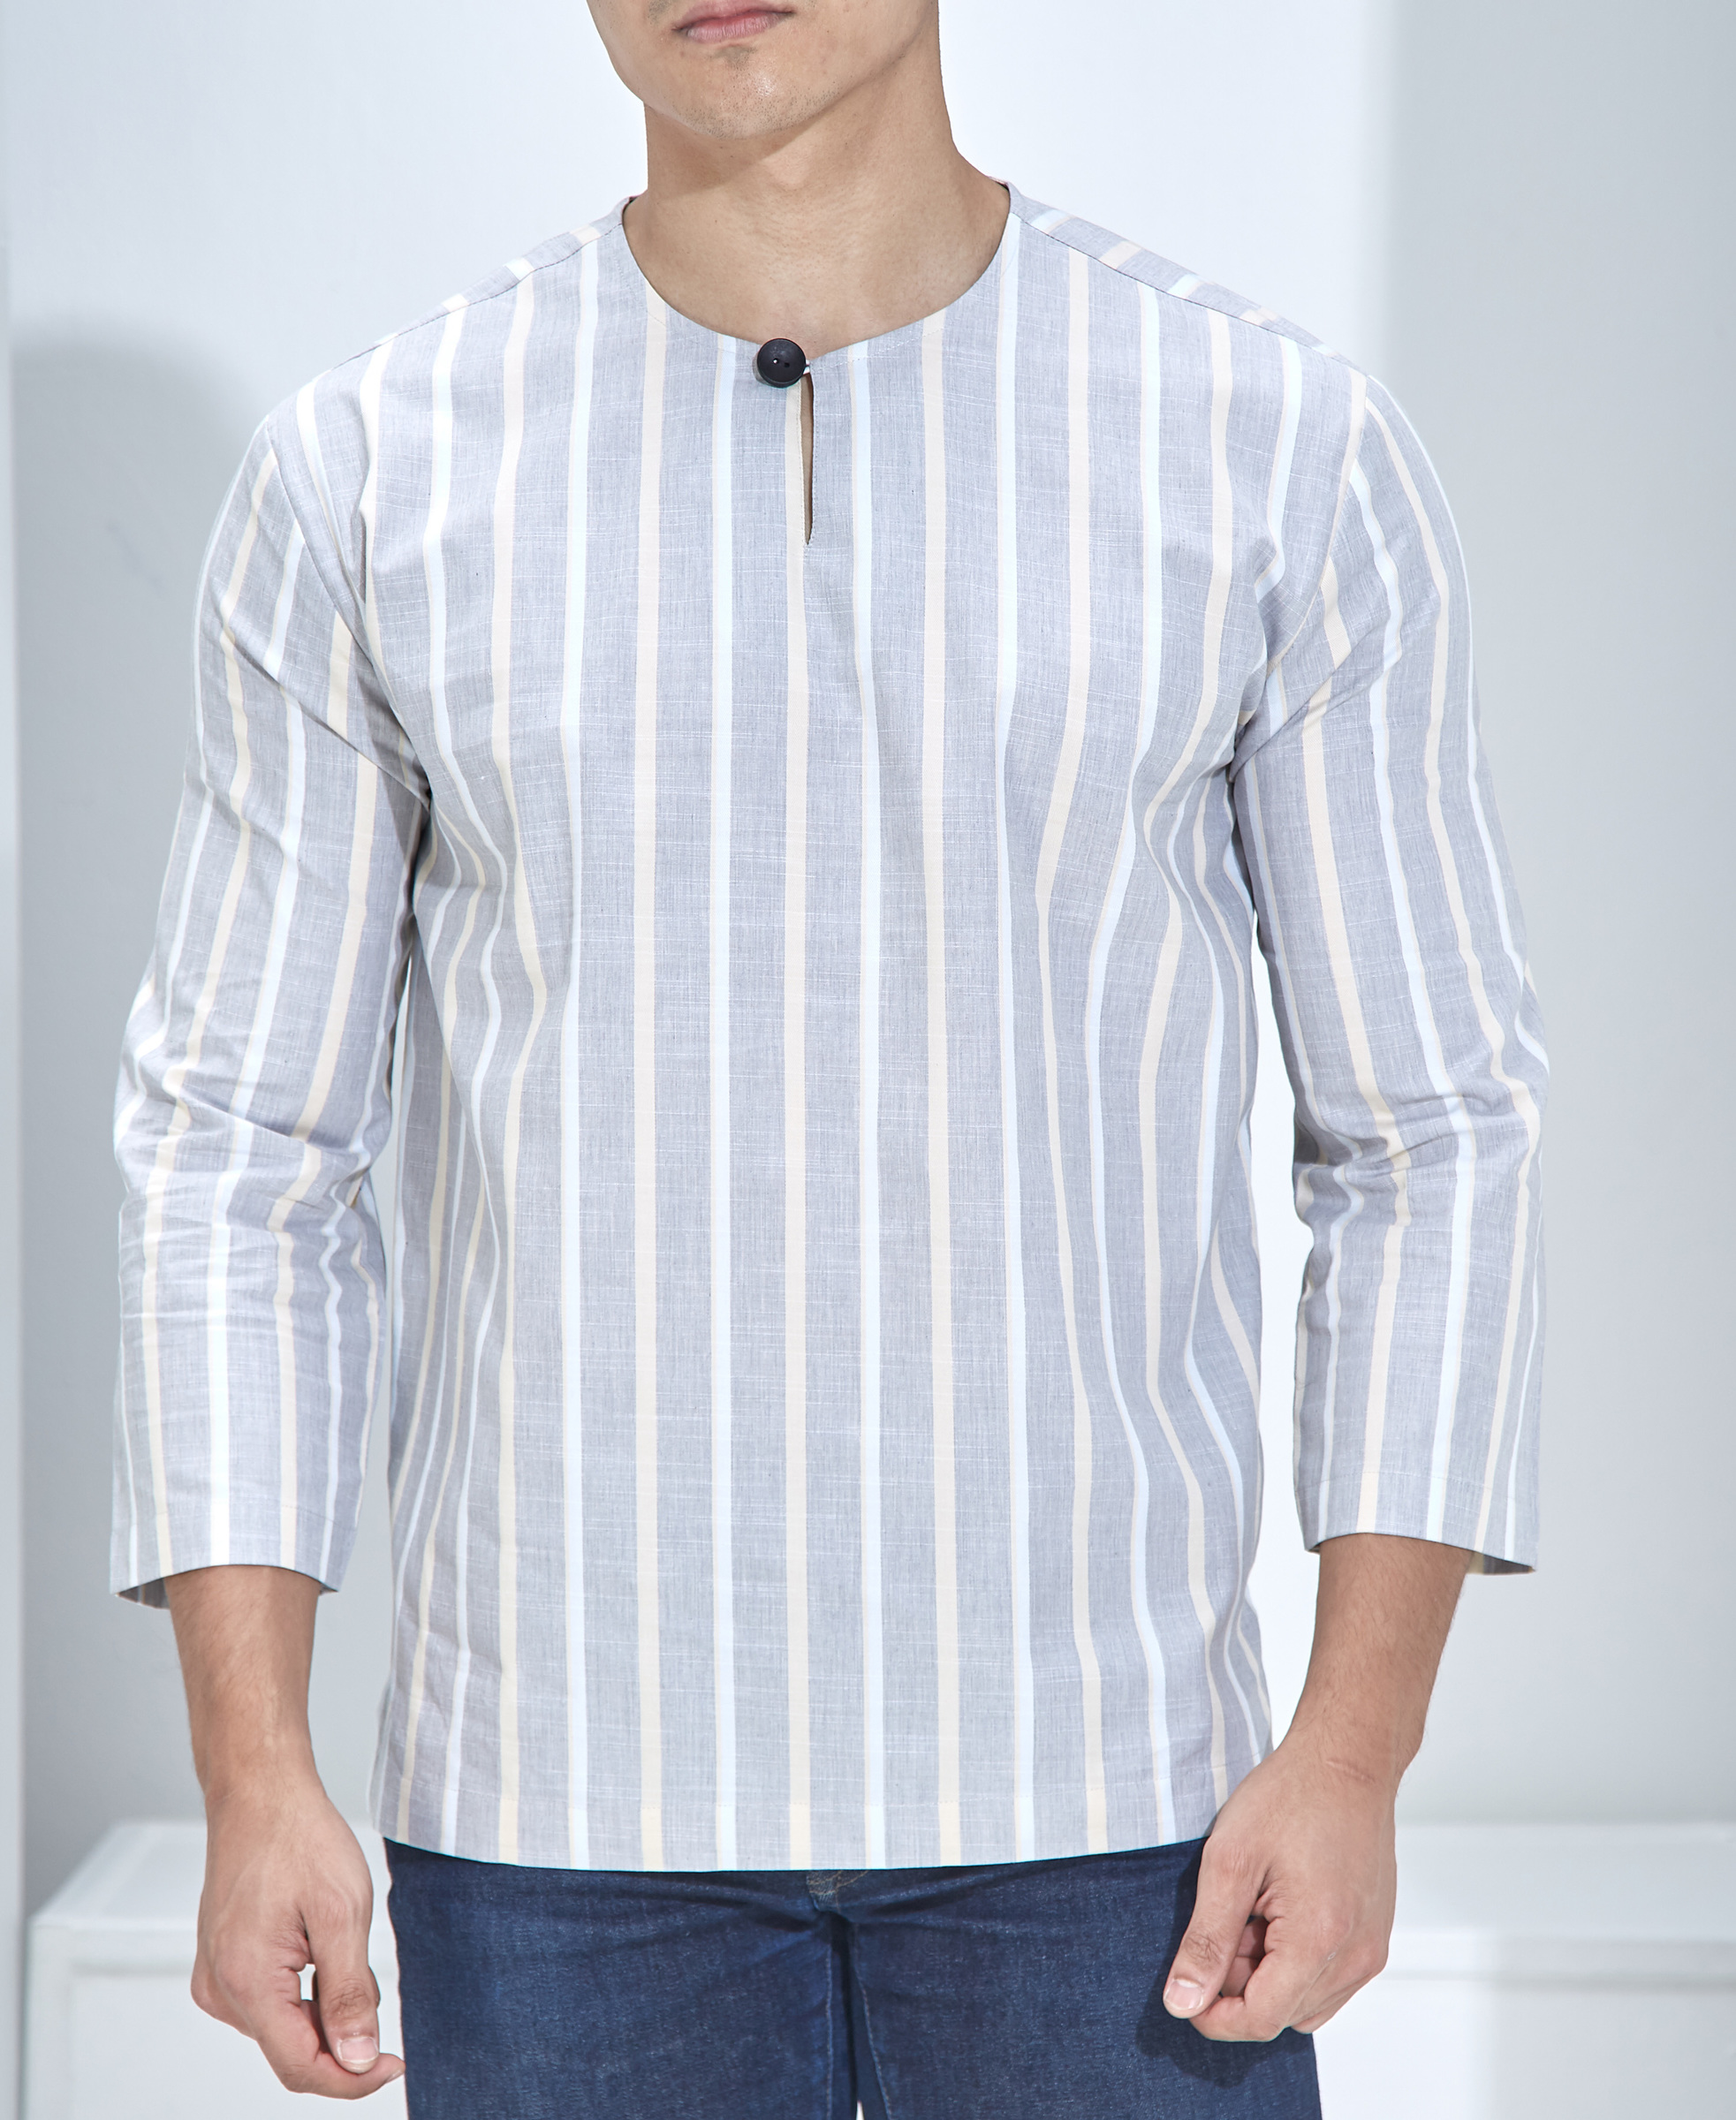 Top Stripe Grey 3.jpg